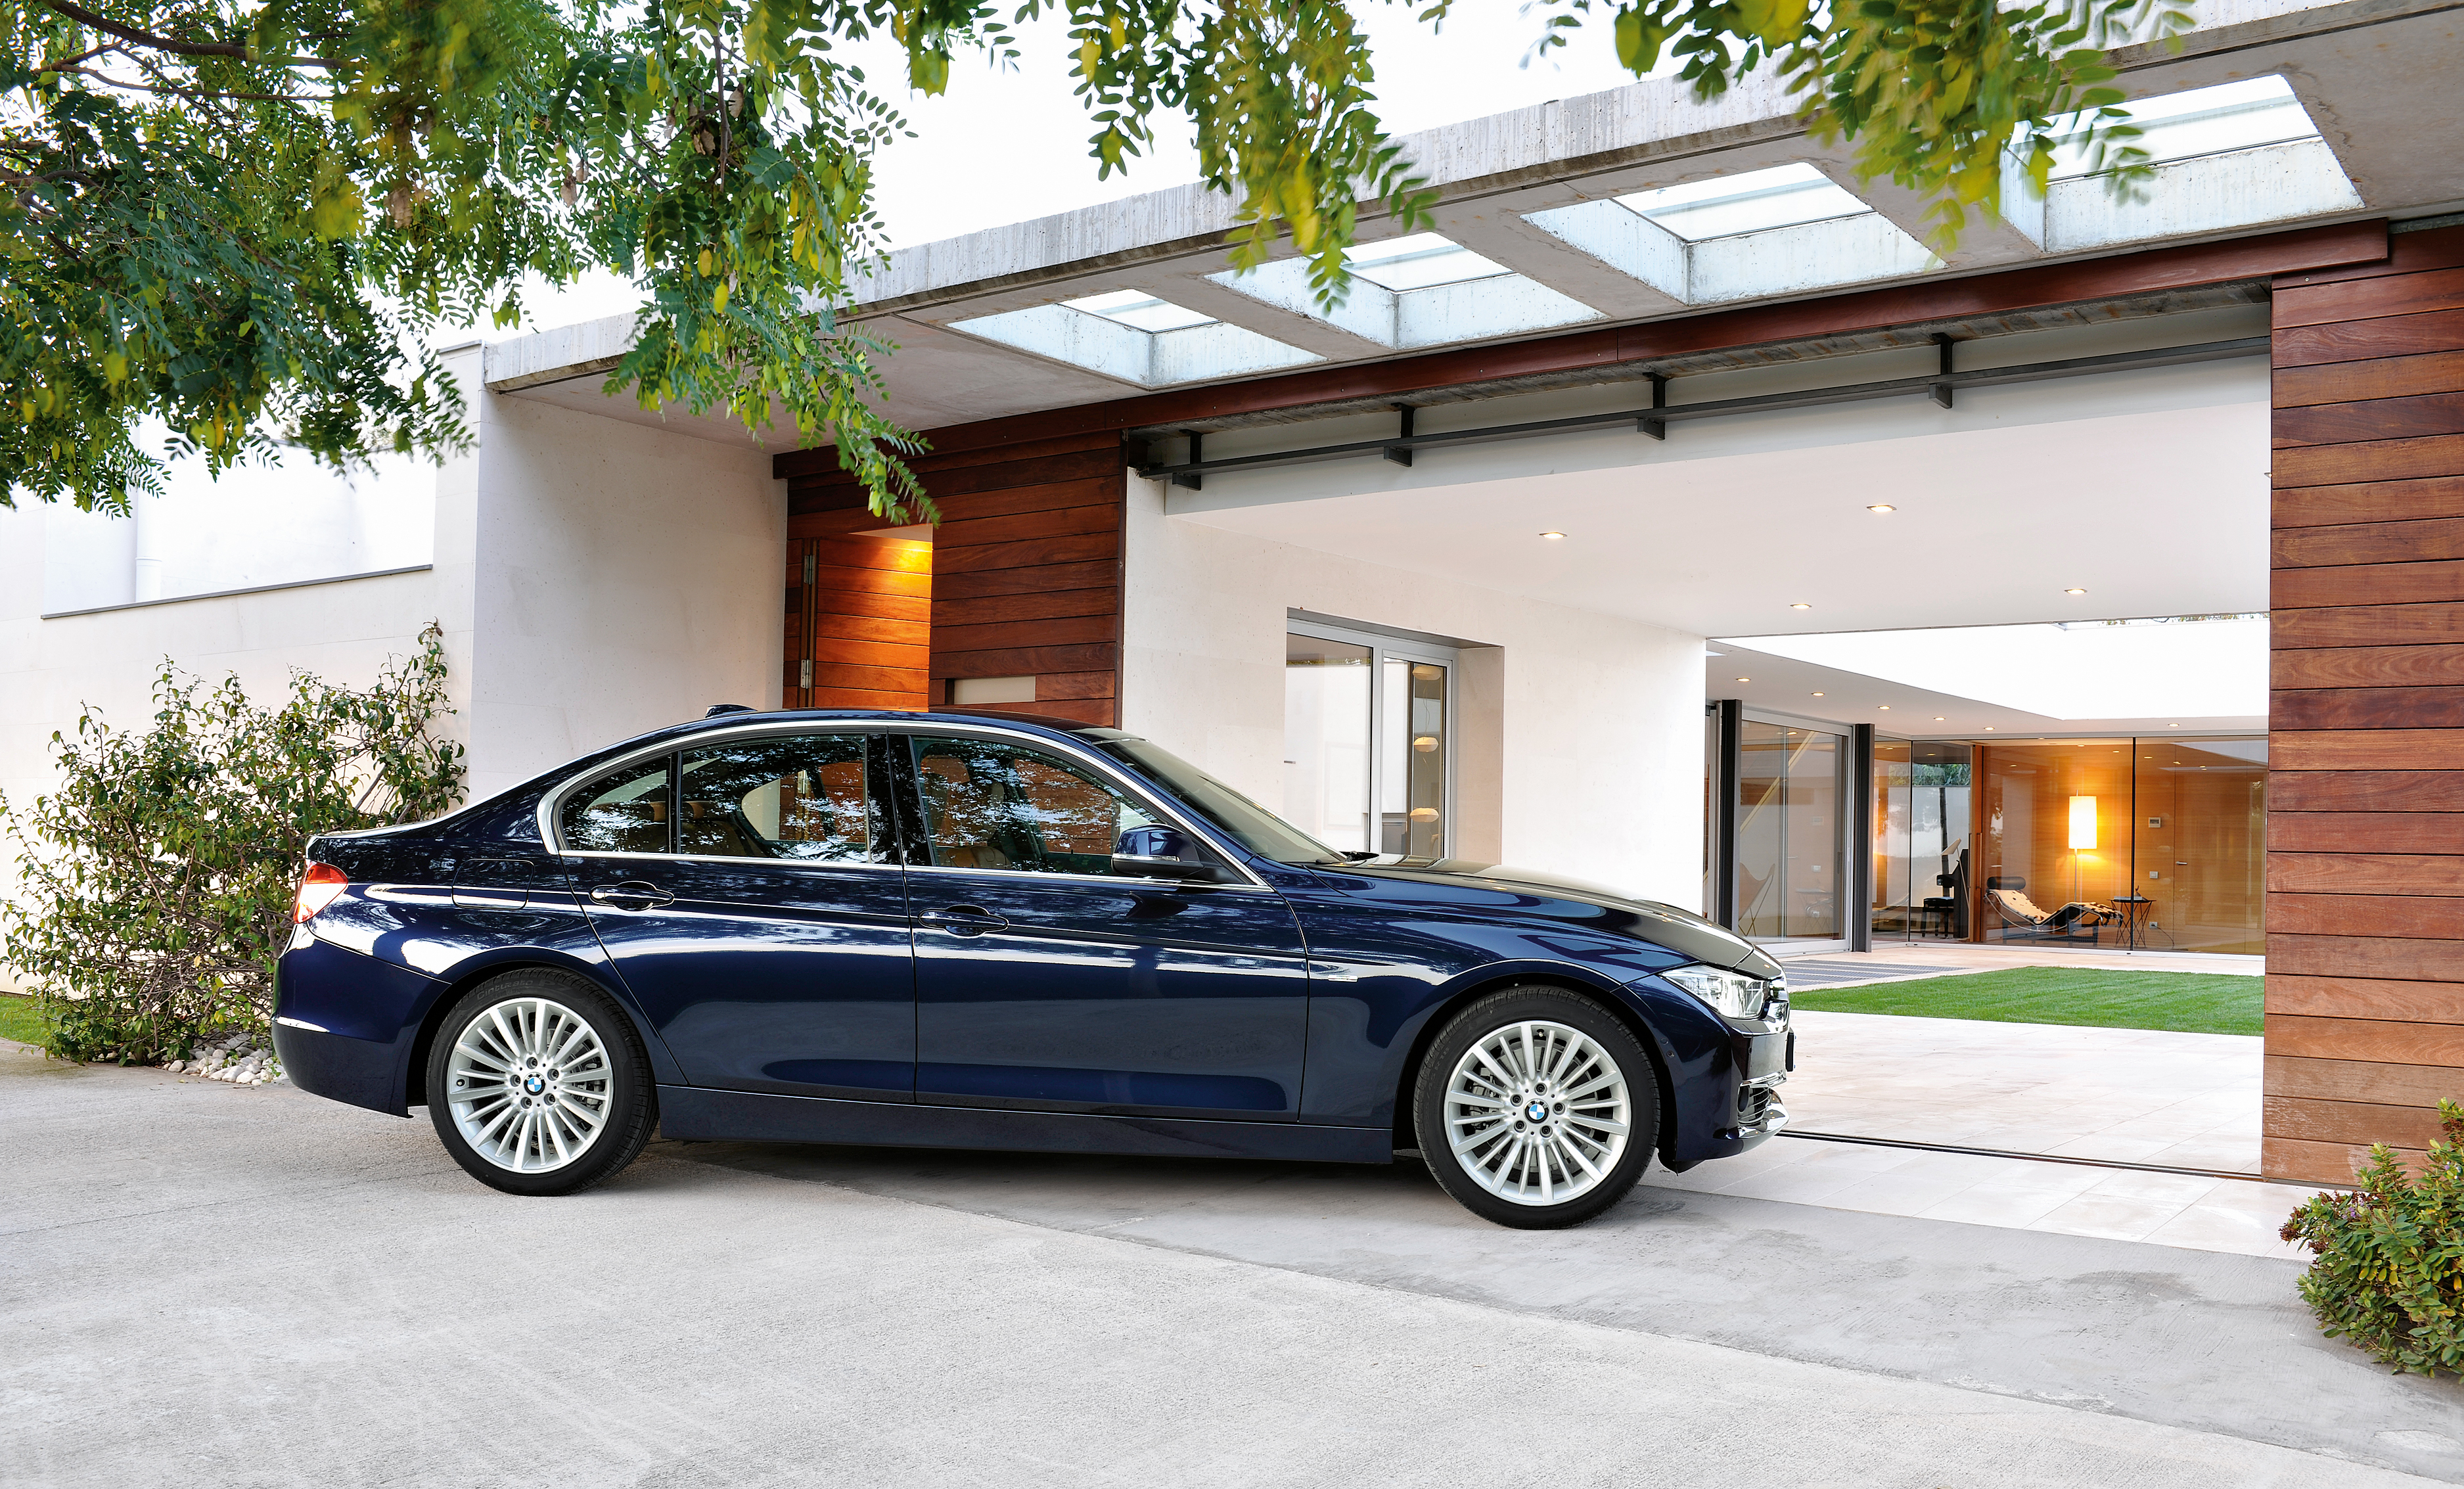 Gallery F30 Bmw 3 Series Luxury Line Hi Res Image 72901